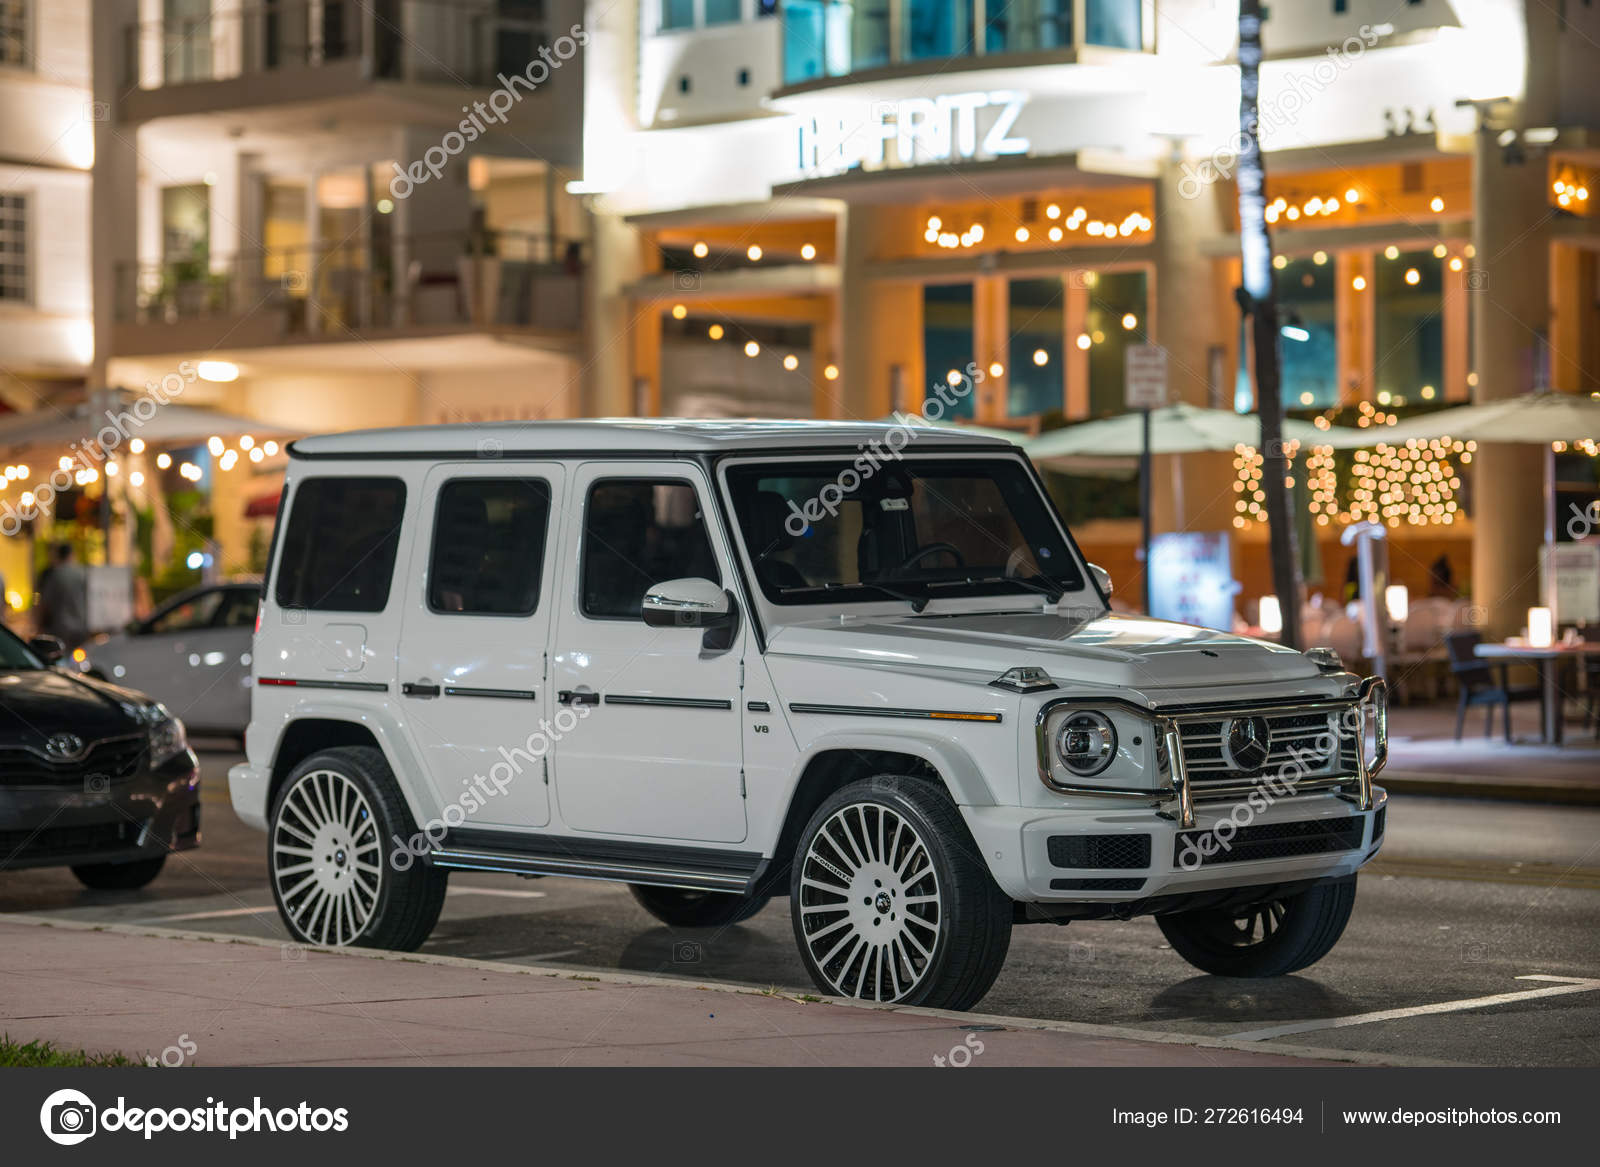 Mercedes G Wagon Luxury Suv Vehicle Stock Editorial Photo C Felixtm 272616494